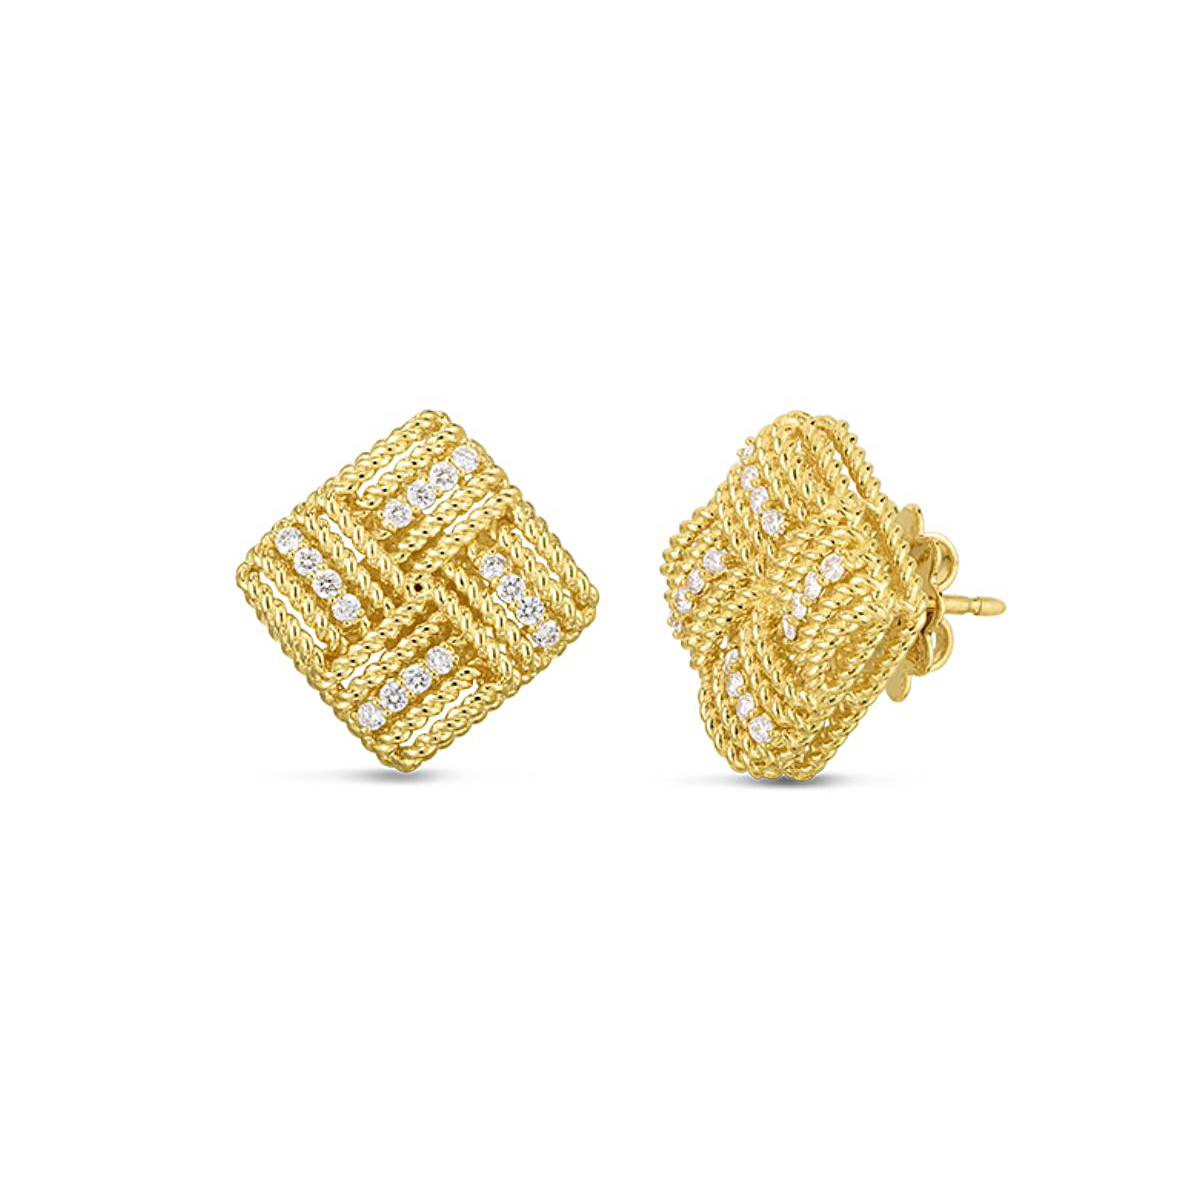 Roberto Coin 18 Karat Yellow Gold Diamond Royal Opera Square Earrings